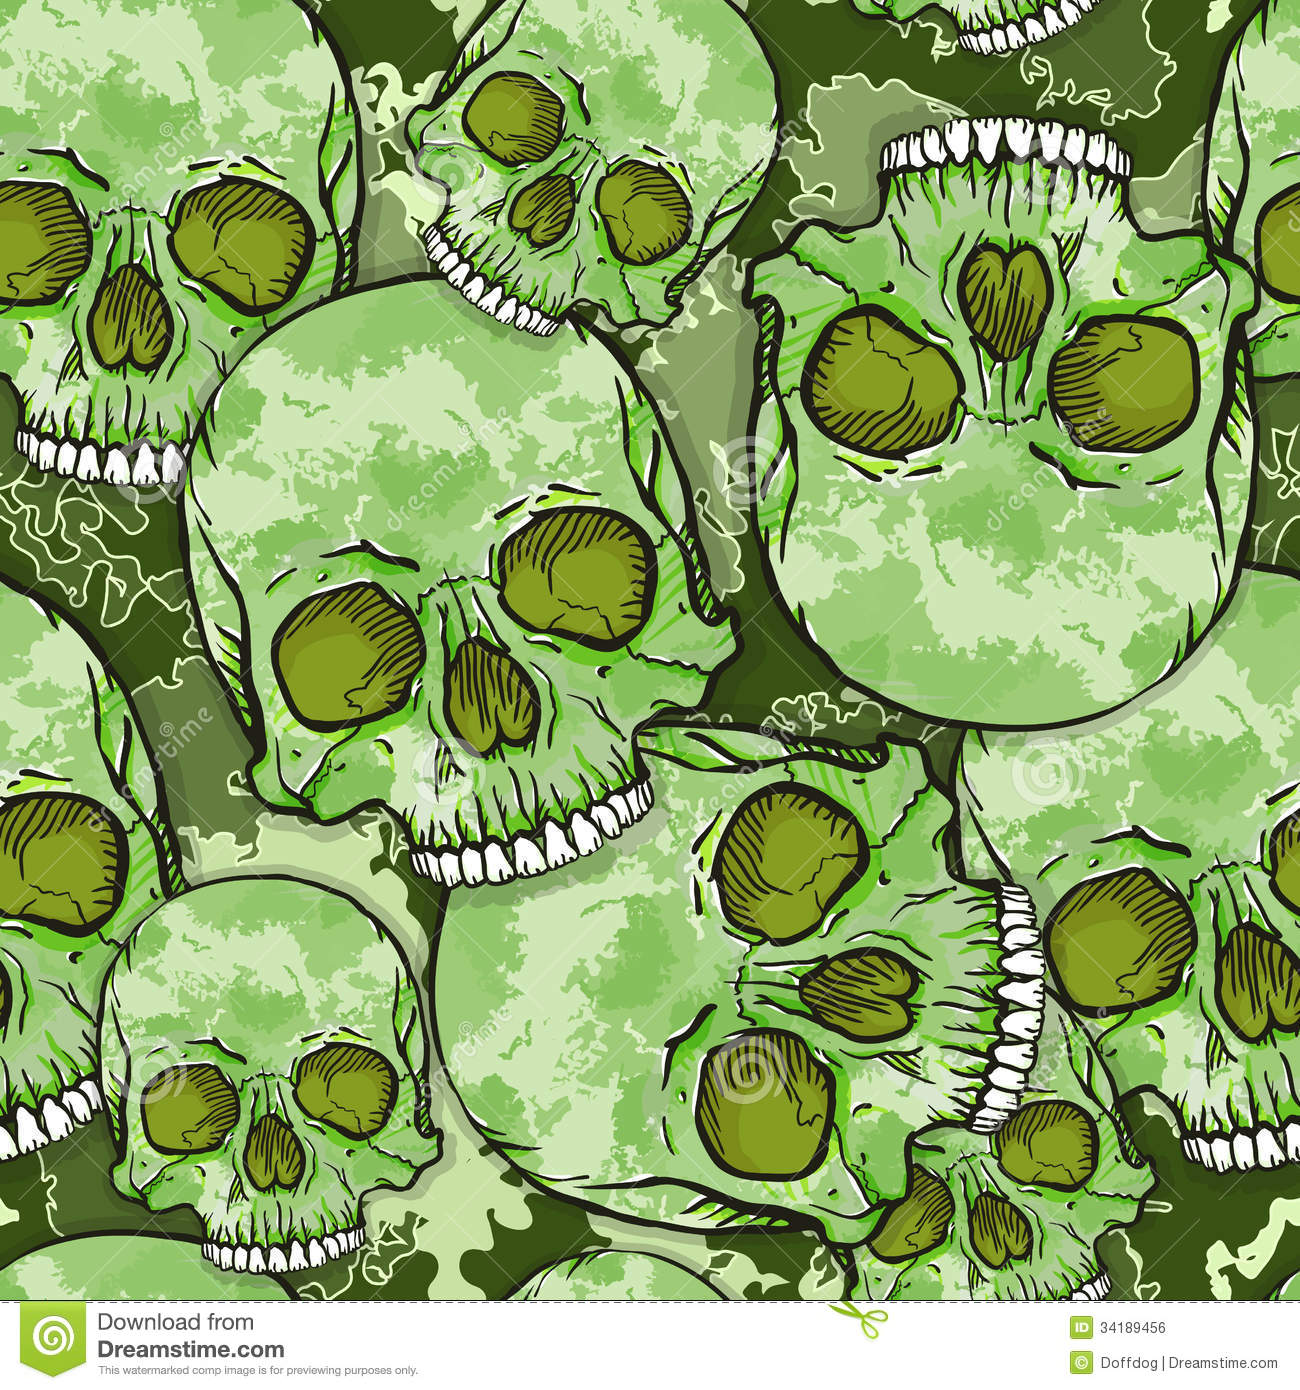 camouflage-skull-pattern-background-vect